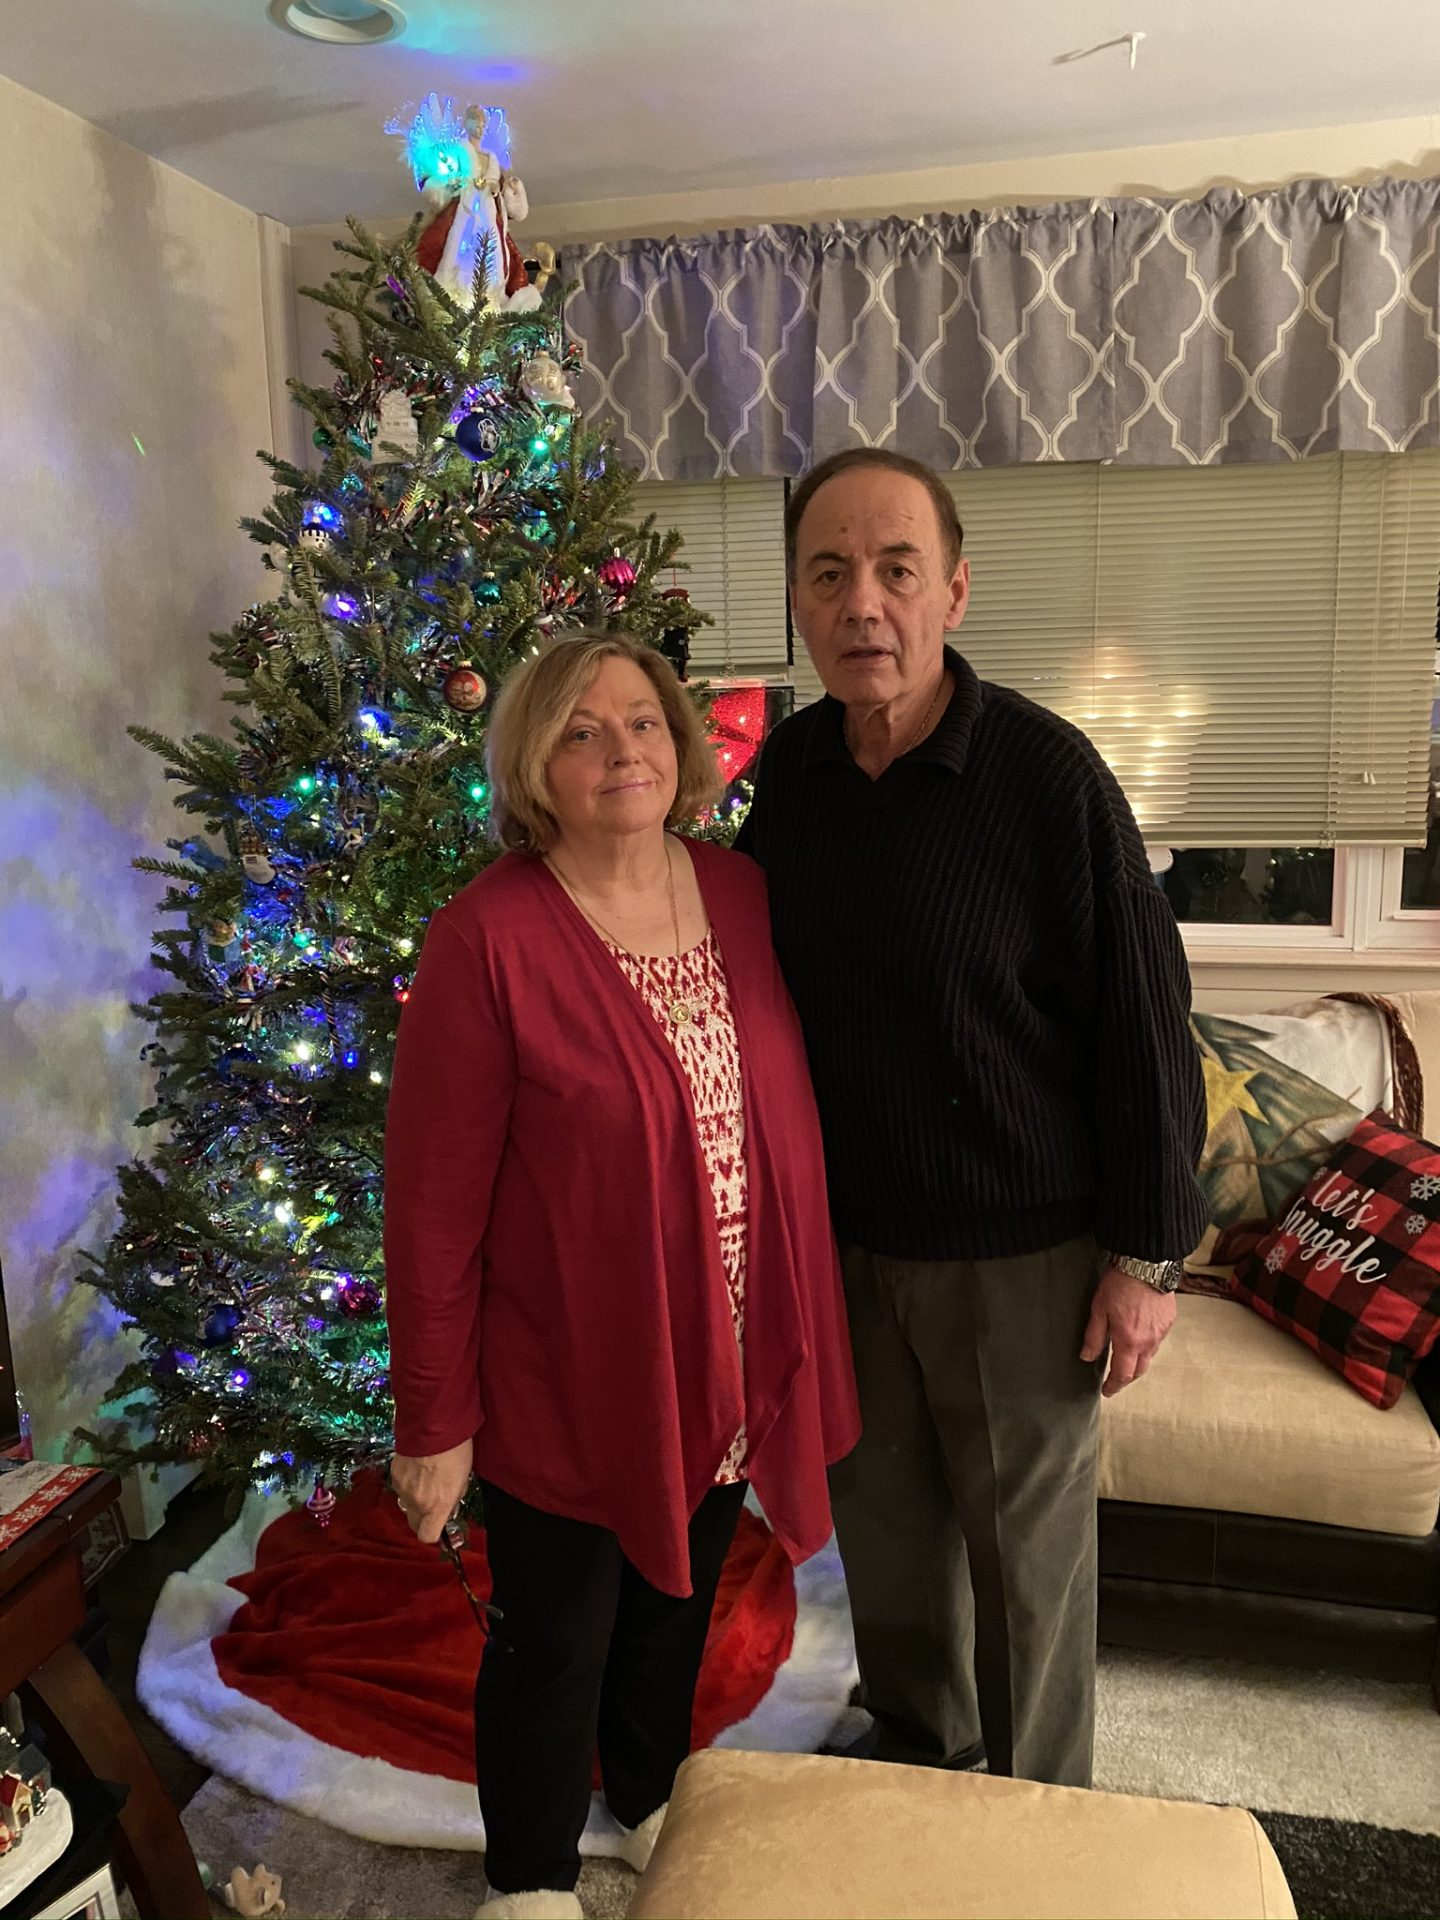 Christmas sister Donna&Bill we will add your picture to our tree